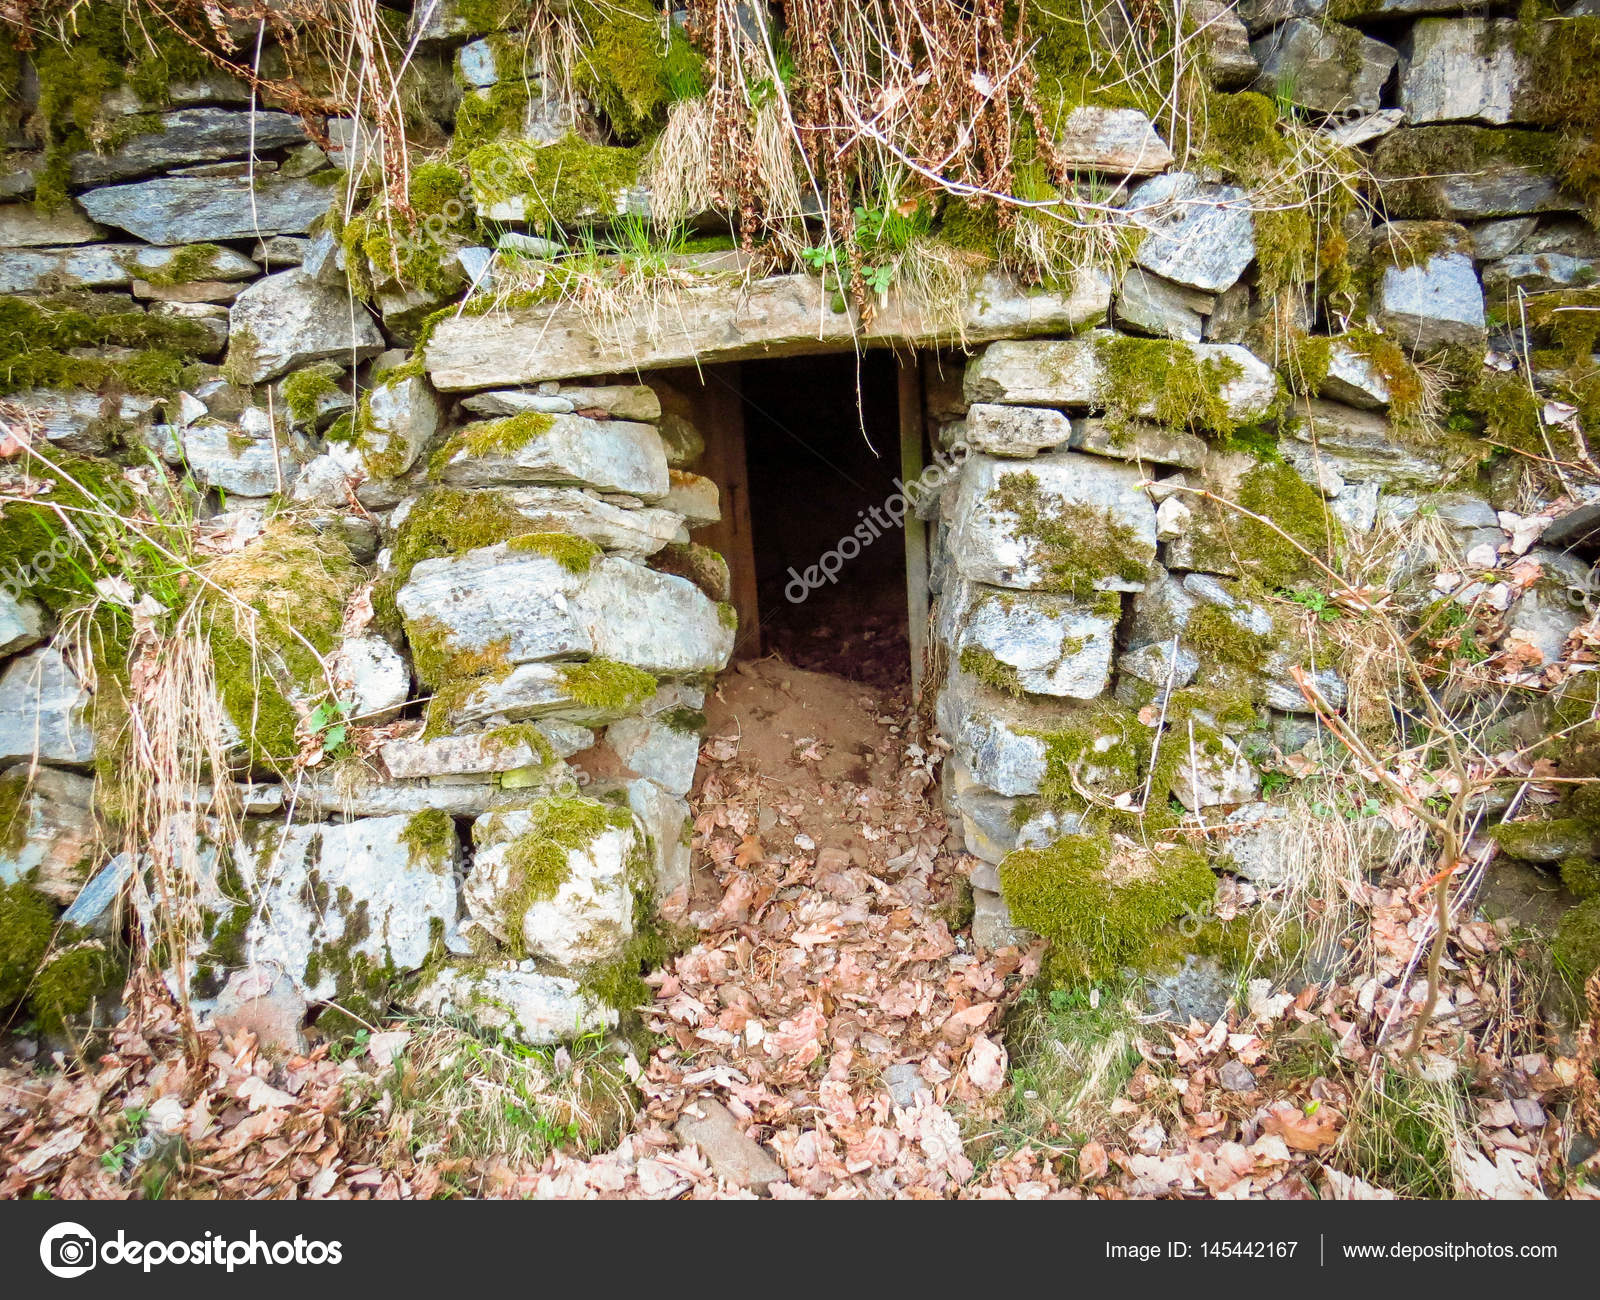 Door to an old abandoned stone cellar in Flaten at Nes Verk in Tvedestrand Aust-Agder Norway u2014 Photo by lillitve & Entrance to an old abandoned stone cellar in Tvedestrand Norway ...